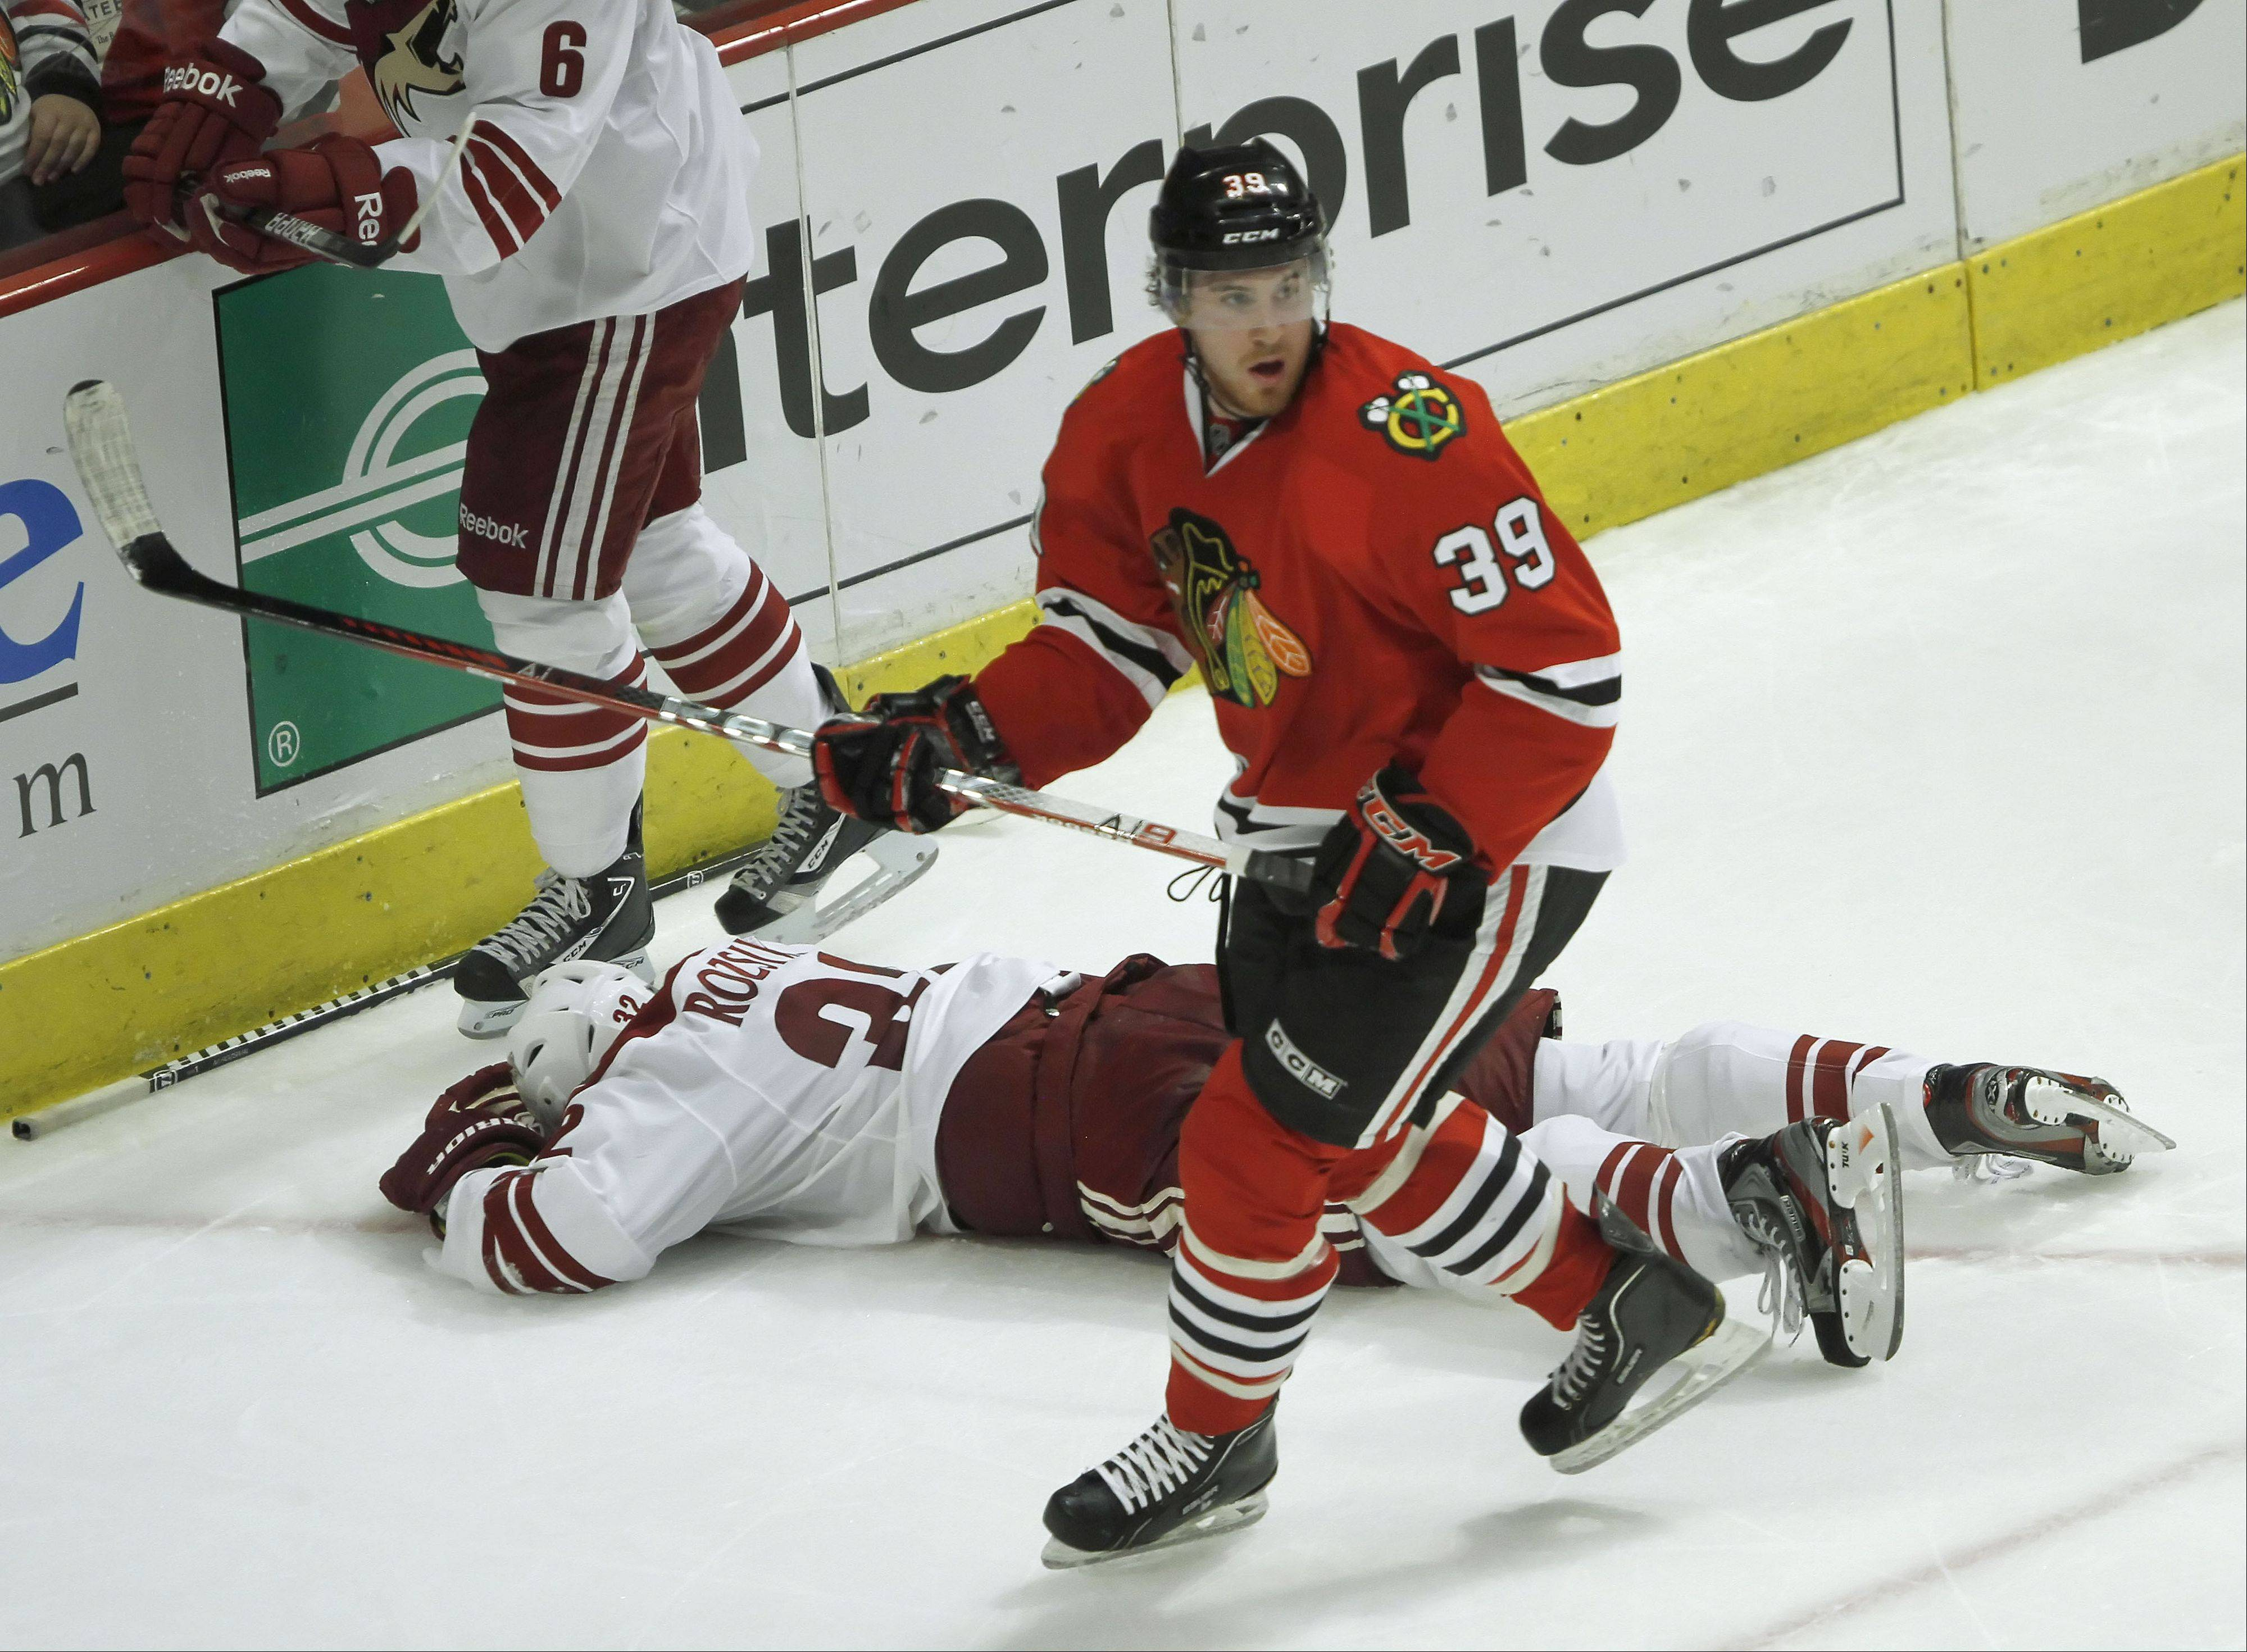 Phoenix Coyotes' defenseman Michal Rozsival lays on the ice after a hit by Chicago Blackhawks' right wing Jimmy Hayes.